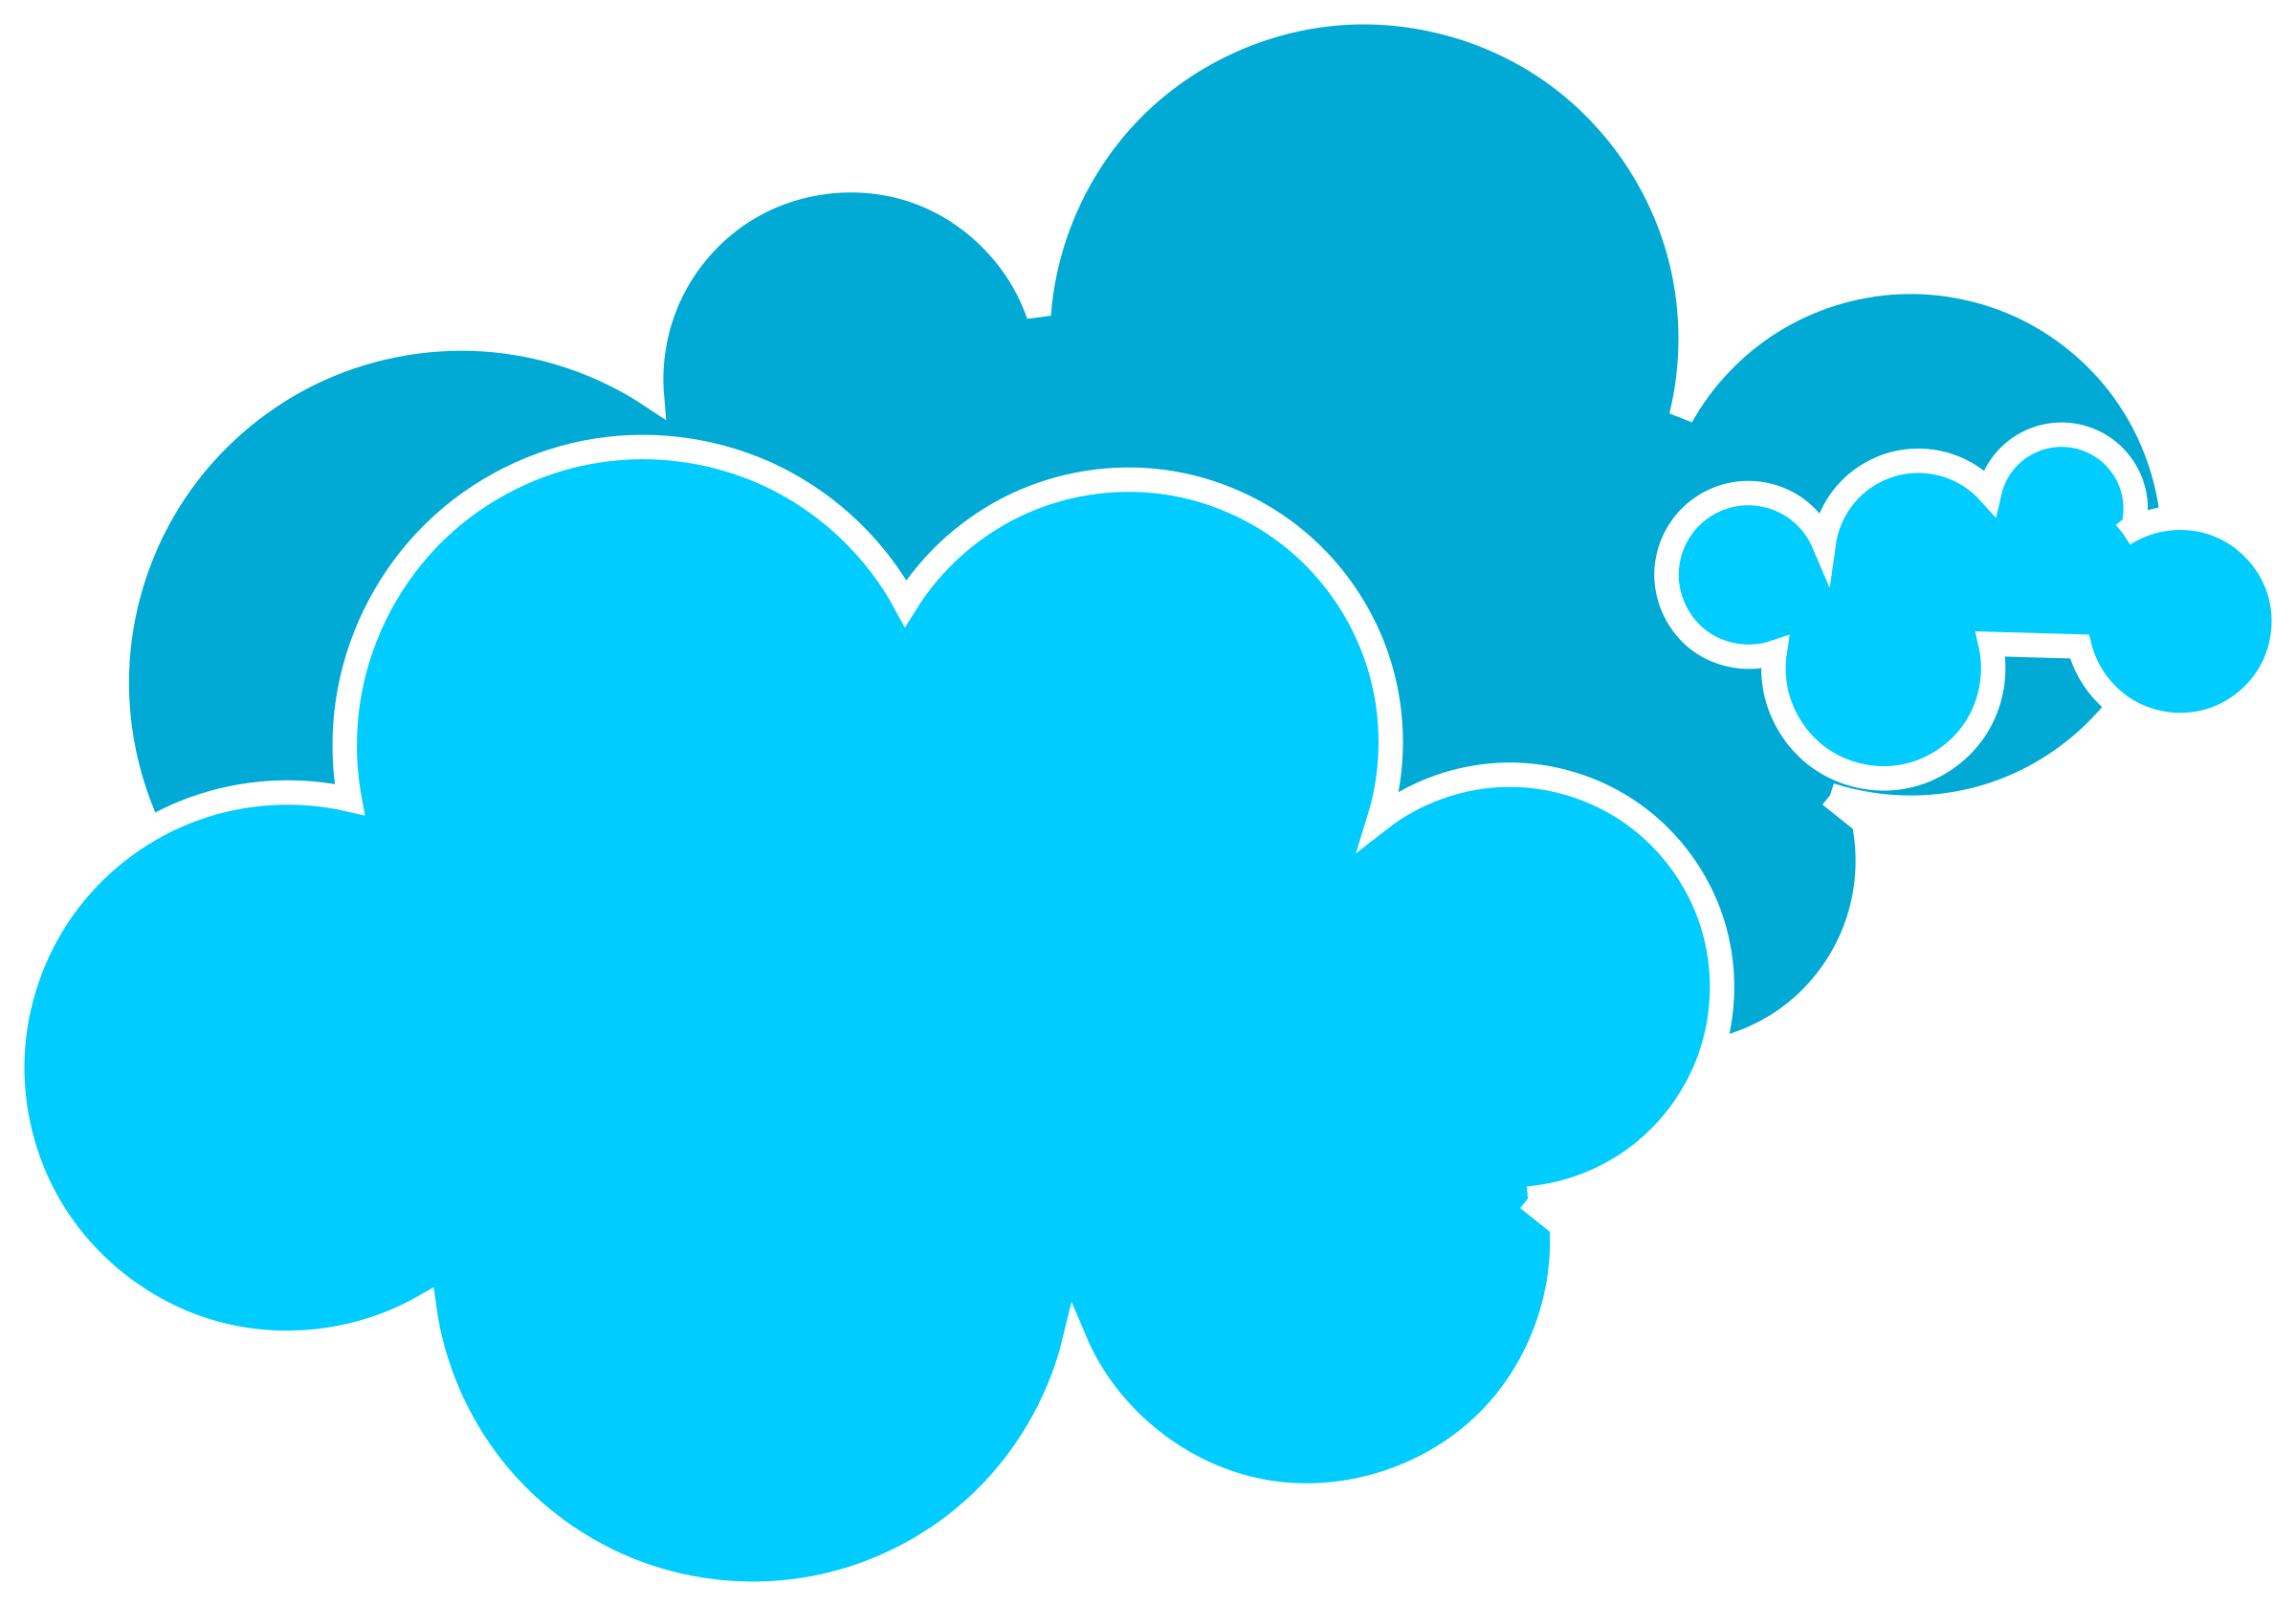 clipart clouds png #7344